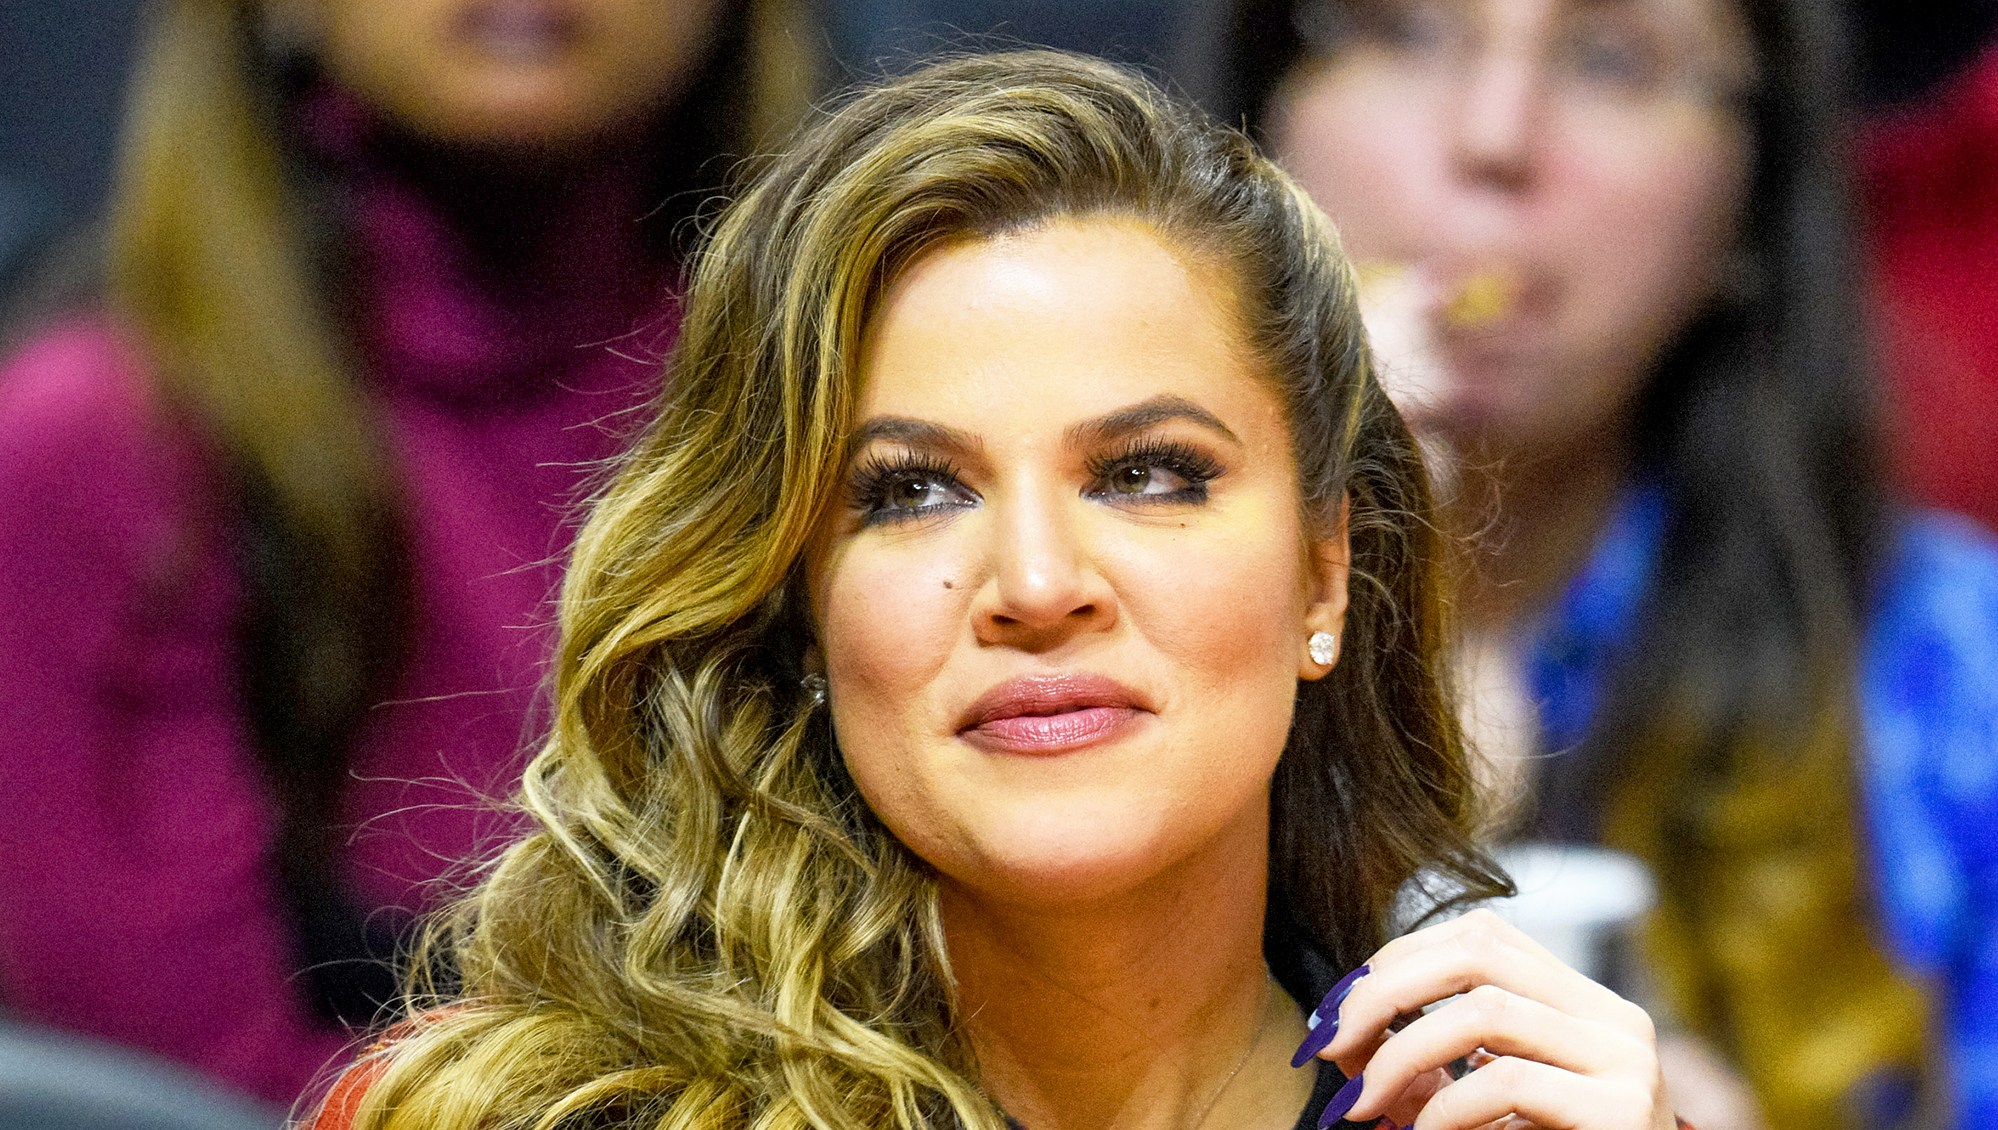 Khloe Kardashian attends a 2014 basketball game between the Detroit Pistons and the Los Angeles Clippers at Staples Center in Los Angeles, California.